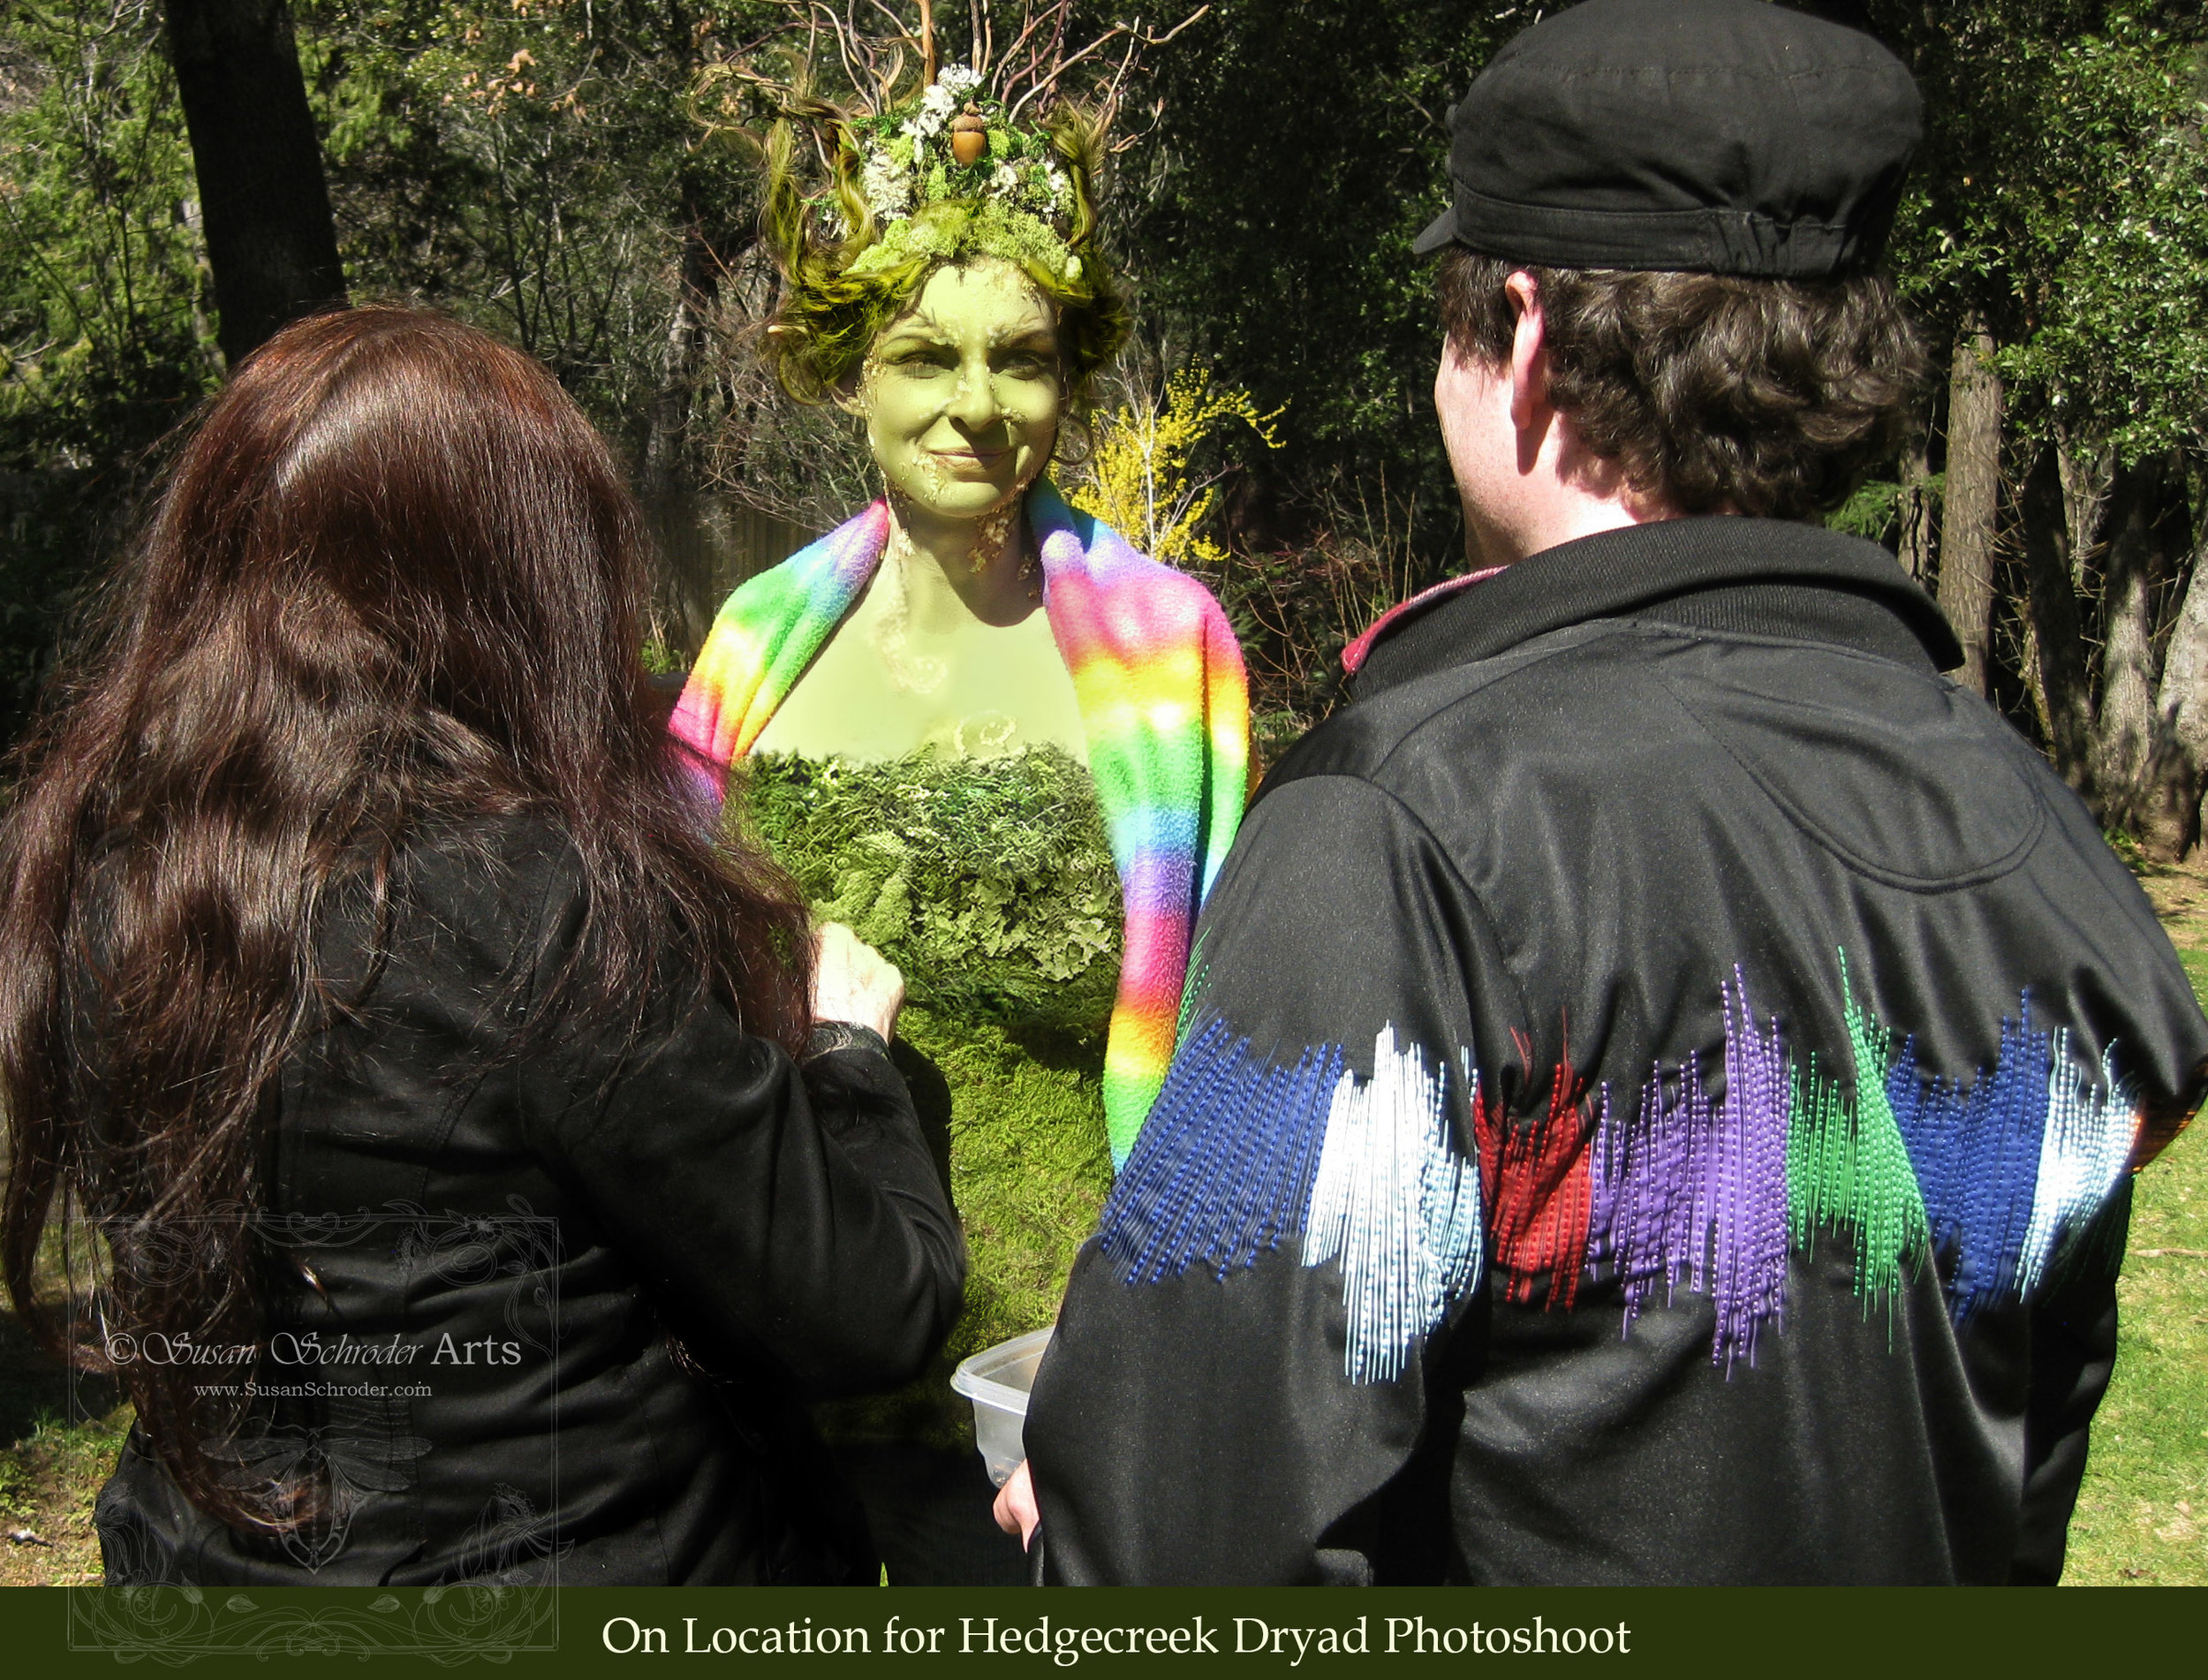 We drove up to the location site and continued the process of makeup, hair and costuming.The headdress and costume were hand made with all that moss sewn on piece by piece to the crown and bodice. It was chilly that day so we were sure to wrap our model in a rainbow blanket!               That's me on the left and my videographer on the right. On a shoot like this I needthe help of a big creative team to keep everything running smoothly as I work on finishing all the details on the model. -